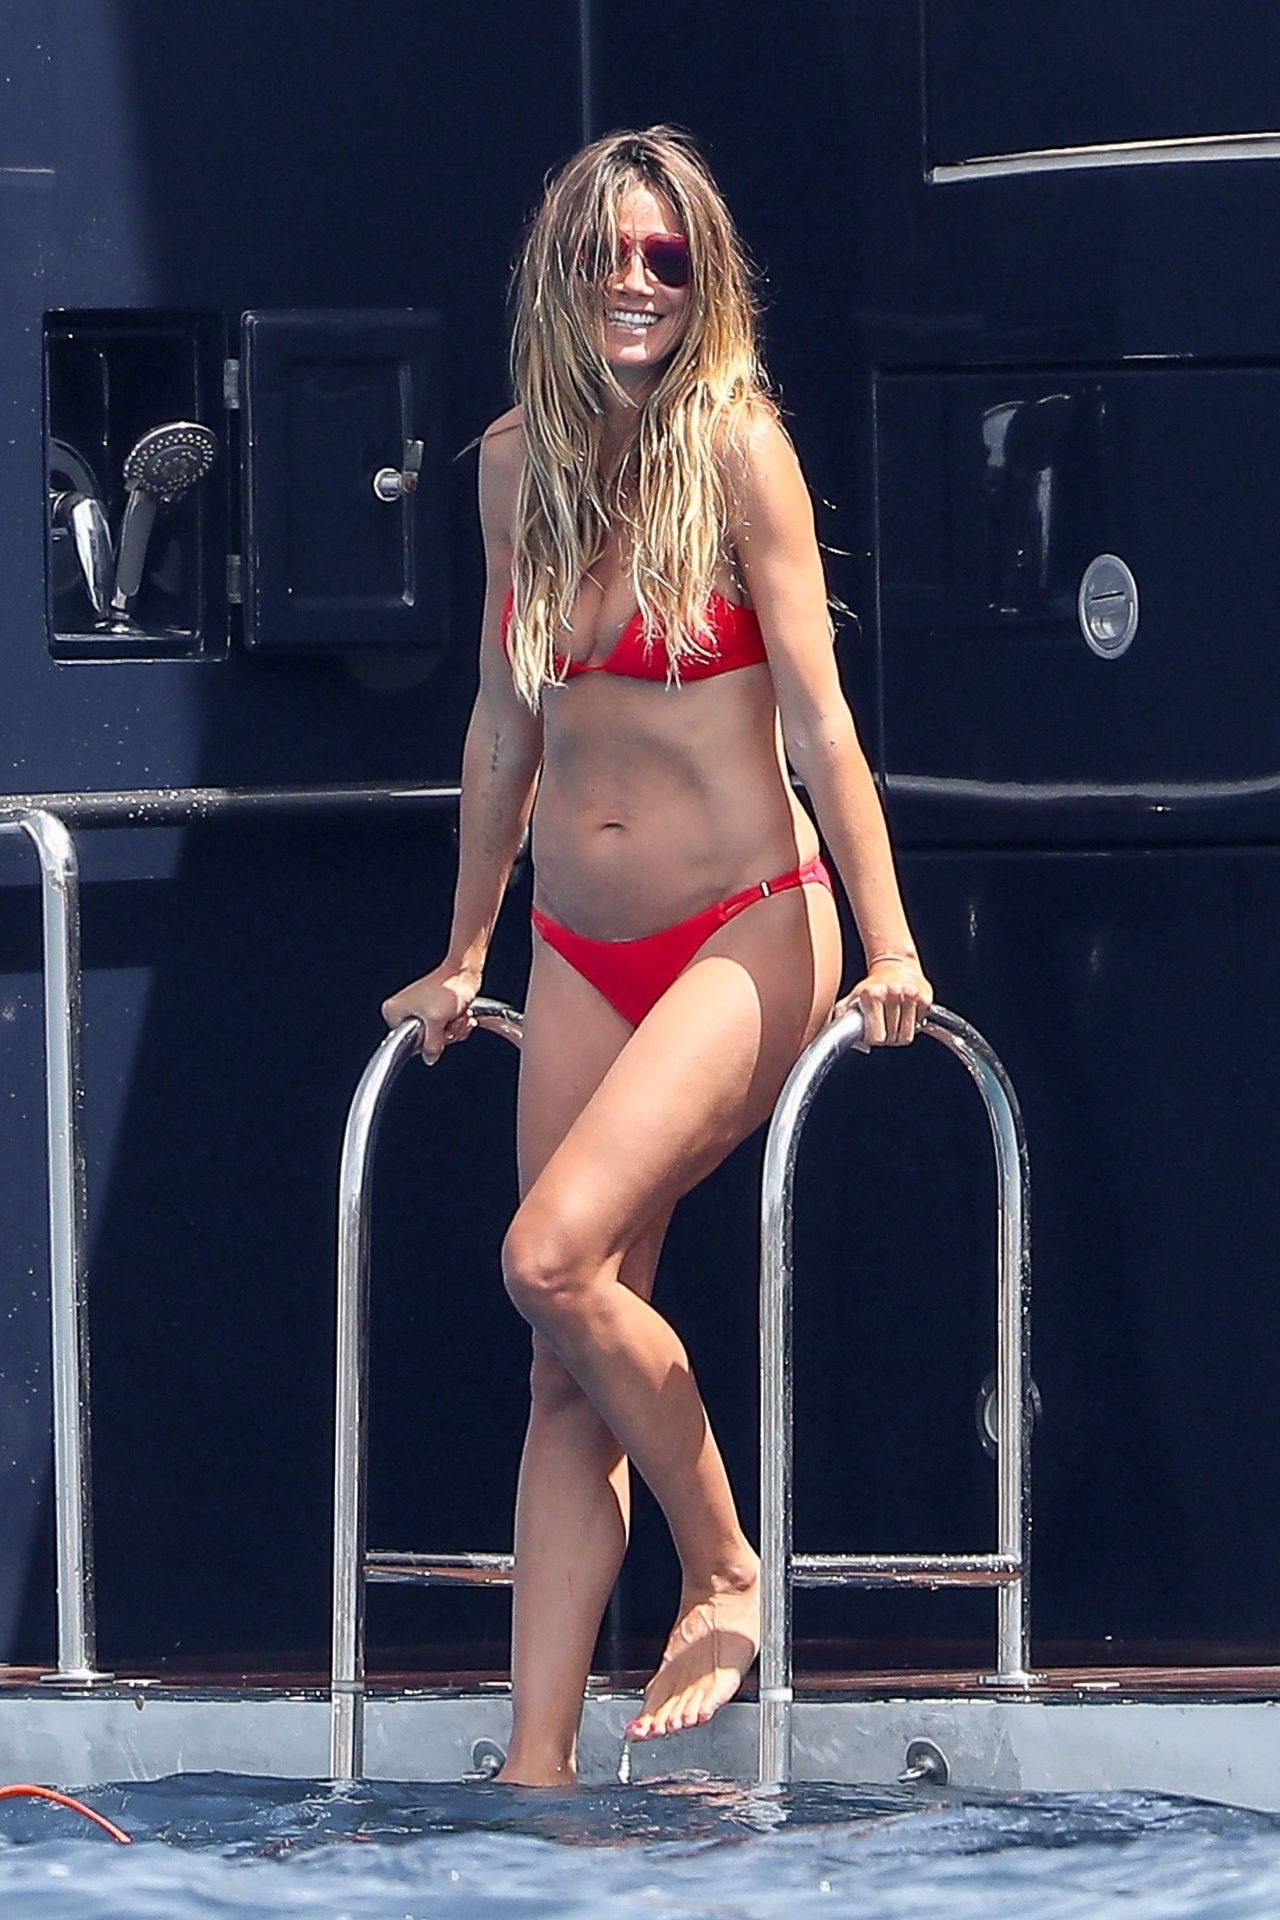 *EXCLUSIVE* ** RIGHTS: ONLY UNITED STATES, CANADA ** St Tropez, FRANCE  - Former Supermodel Heidi Klum looked incredible as she soaked up the Sun in St. Tropez with boyfriend Vito Schnabel and fashion designer Zac Posen.  Pictured: Heidi Klum  BACKGRID USA 27 JULY 2017   BYLINE MUST READ: Best Image / BACKGRID  USA: +1 310 798 9111 / usasales@backgrid.com  UK: +44 208 344 2007 / uksales@backgrid.com  *UK Clients - Pictures Containing Children Please Pixelate Face Prior To Publication*